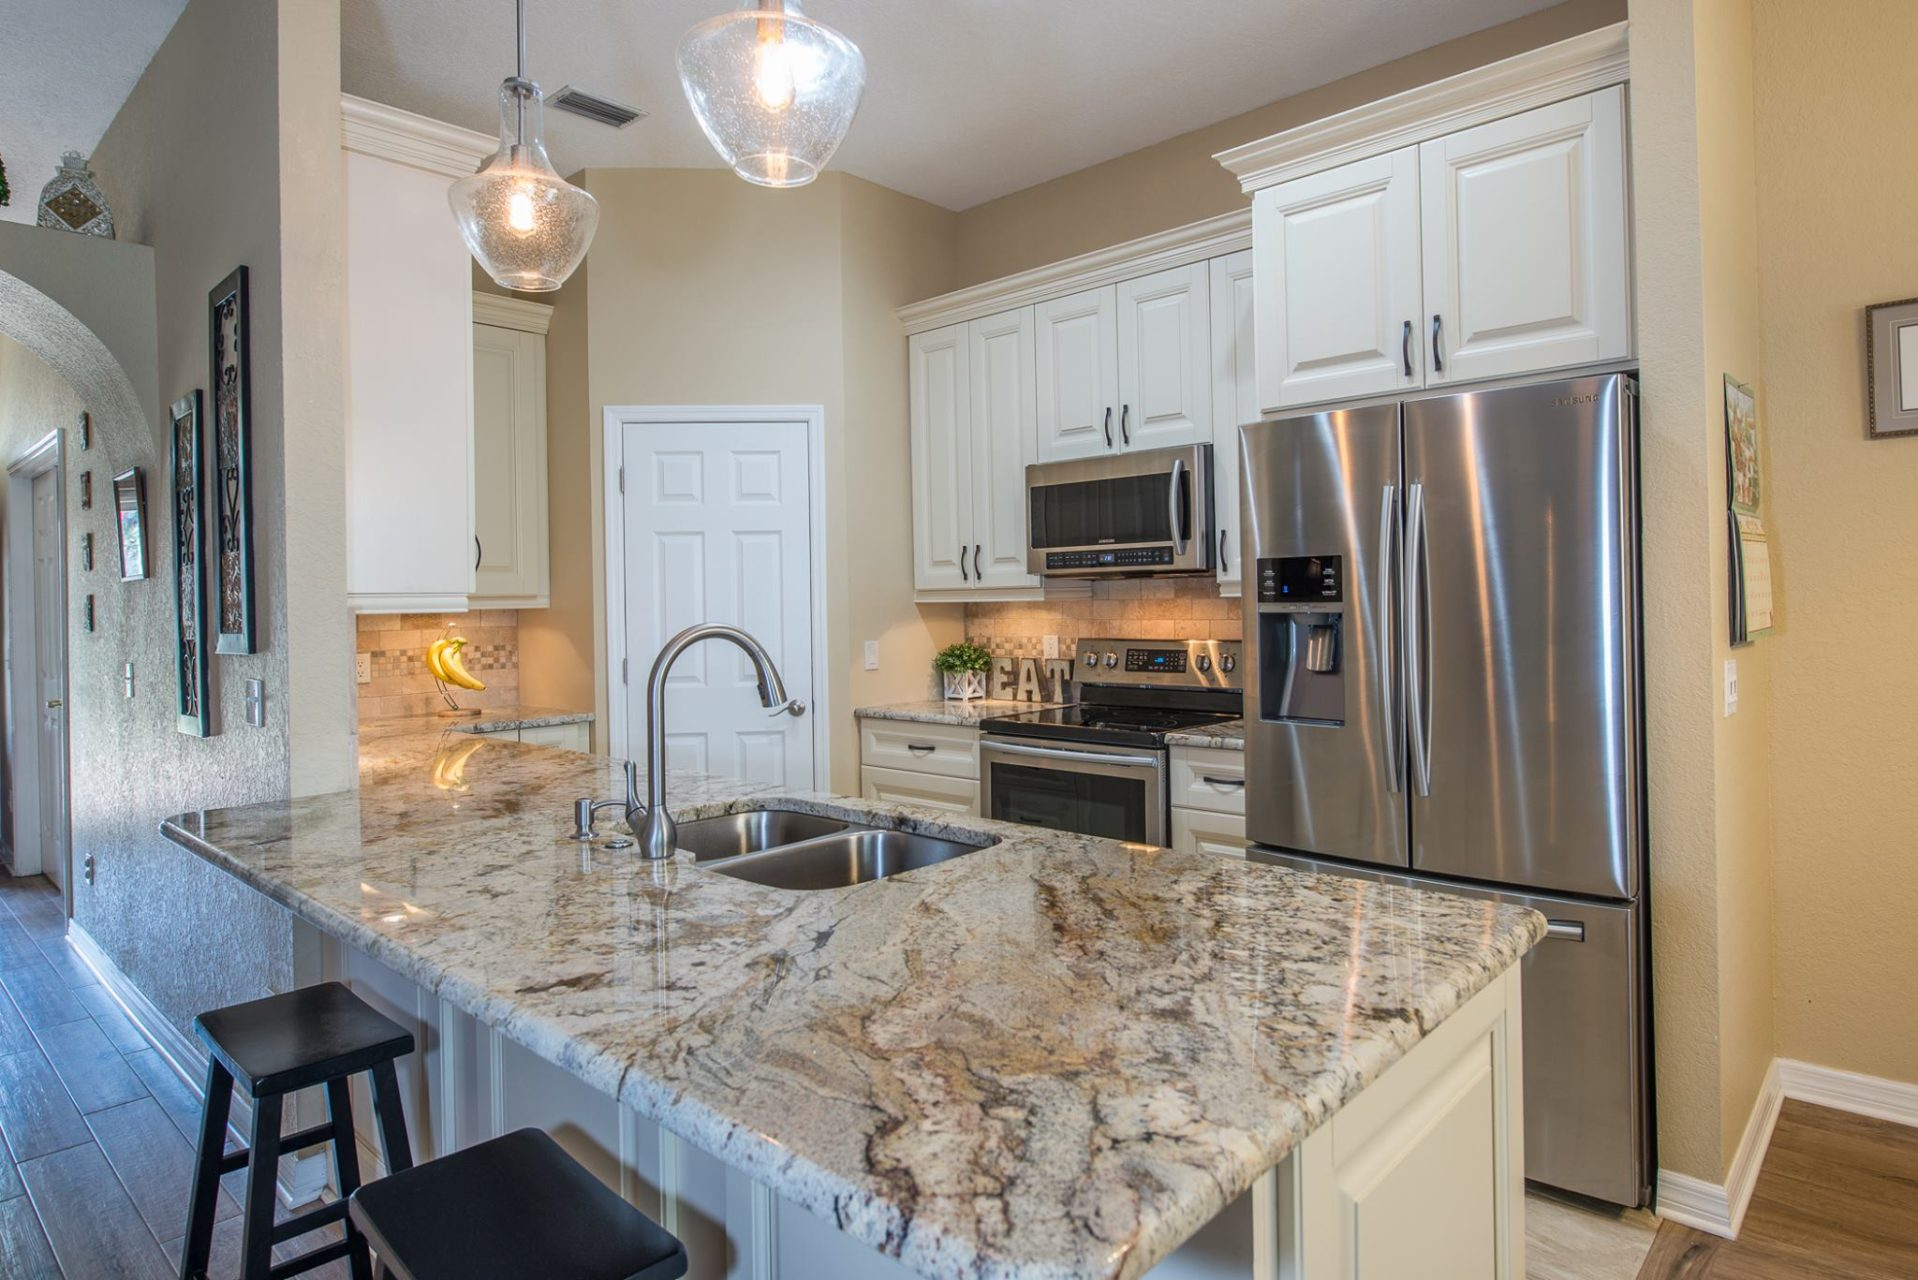 Kitchen Remodeling San Antonio Stone Oak Bulverde Dominion Alamo Heights Cabinets Countertops Tile Flooring